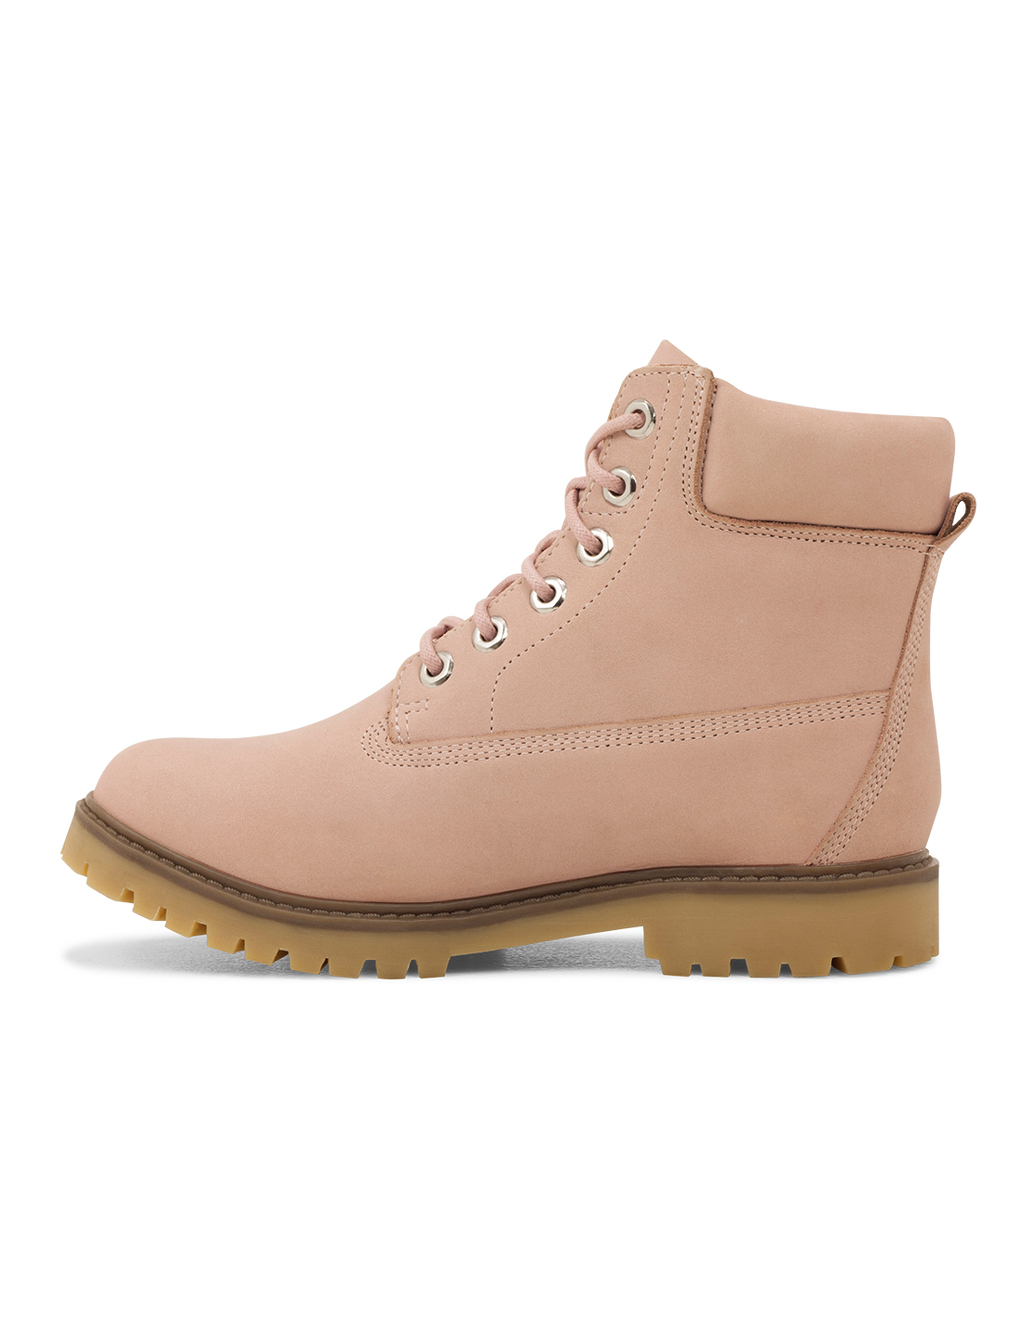 Blush Nubuck